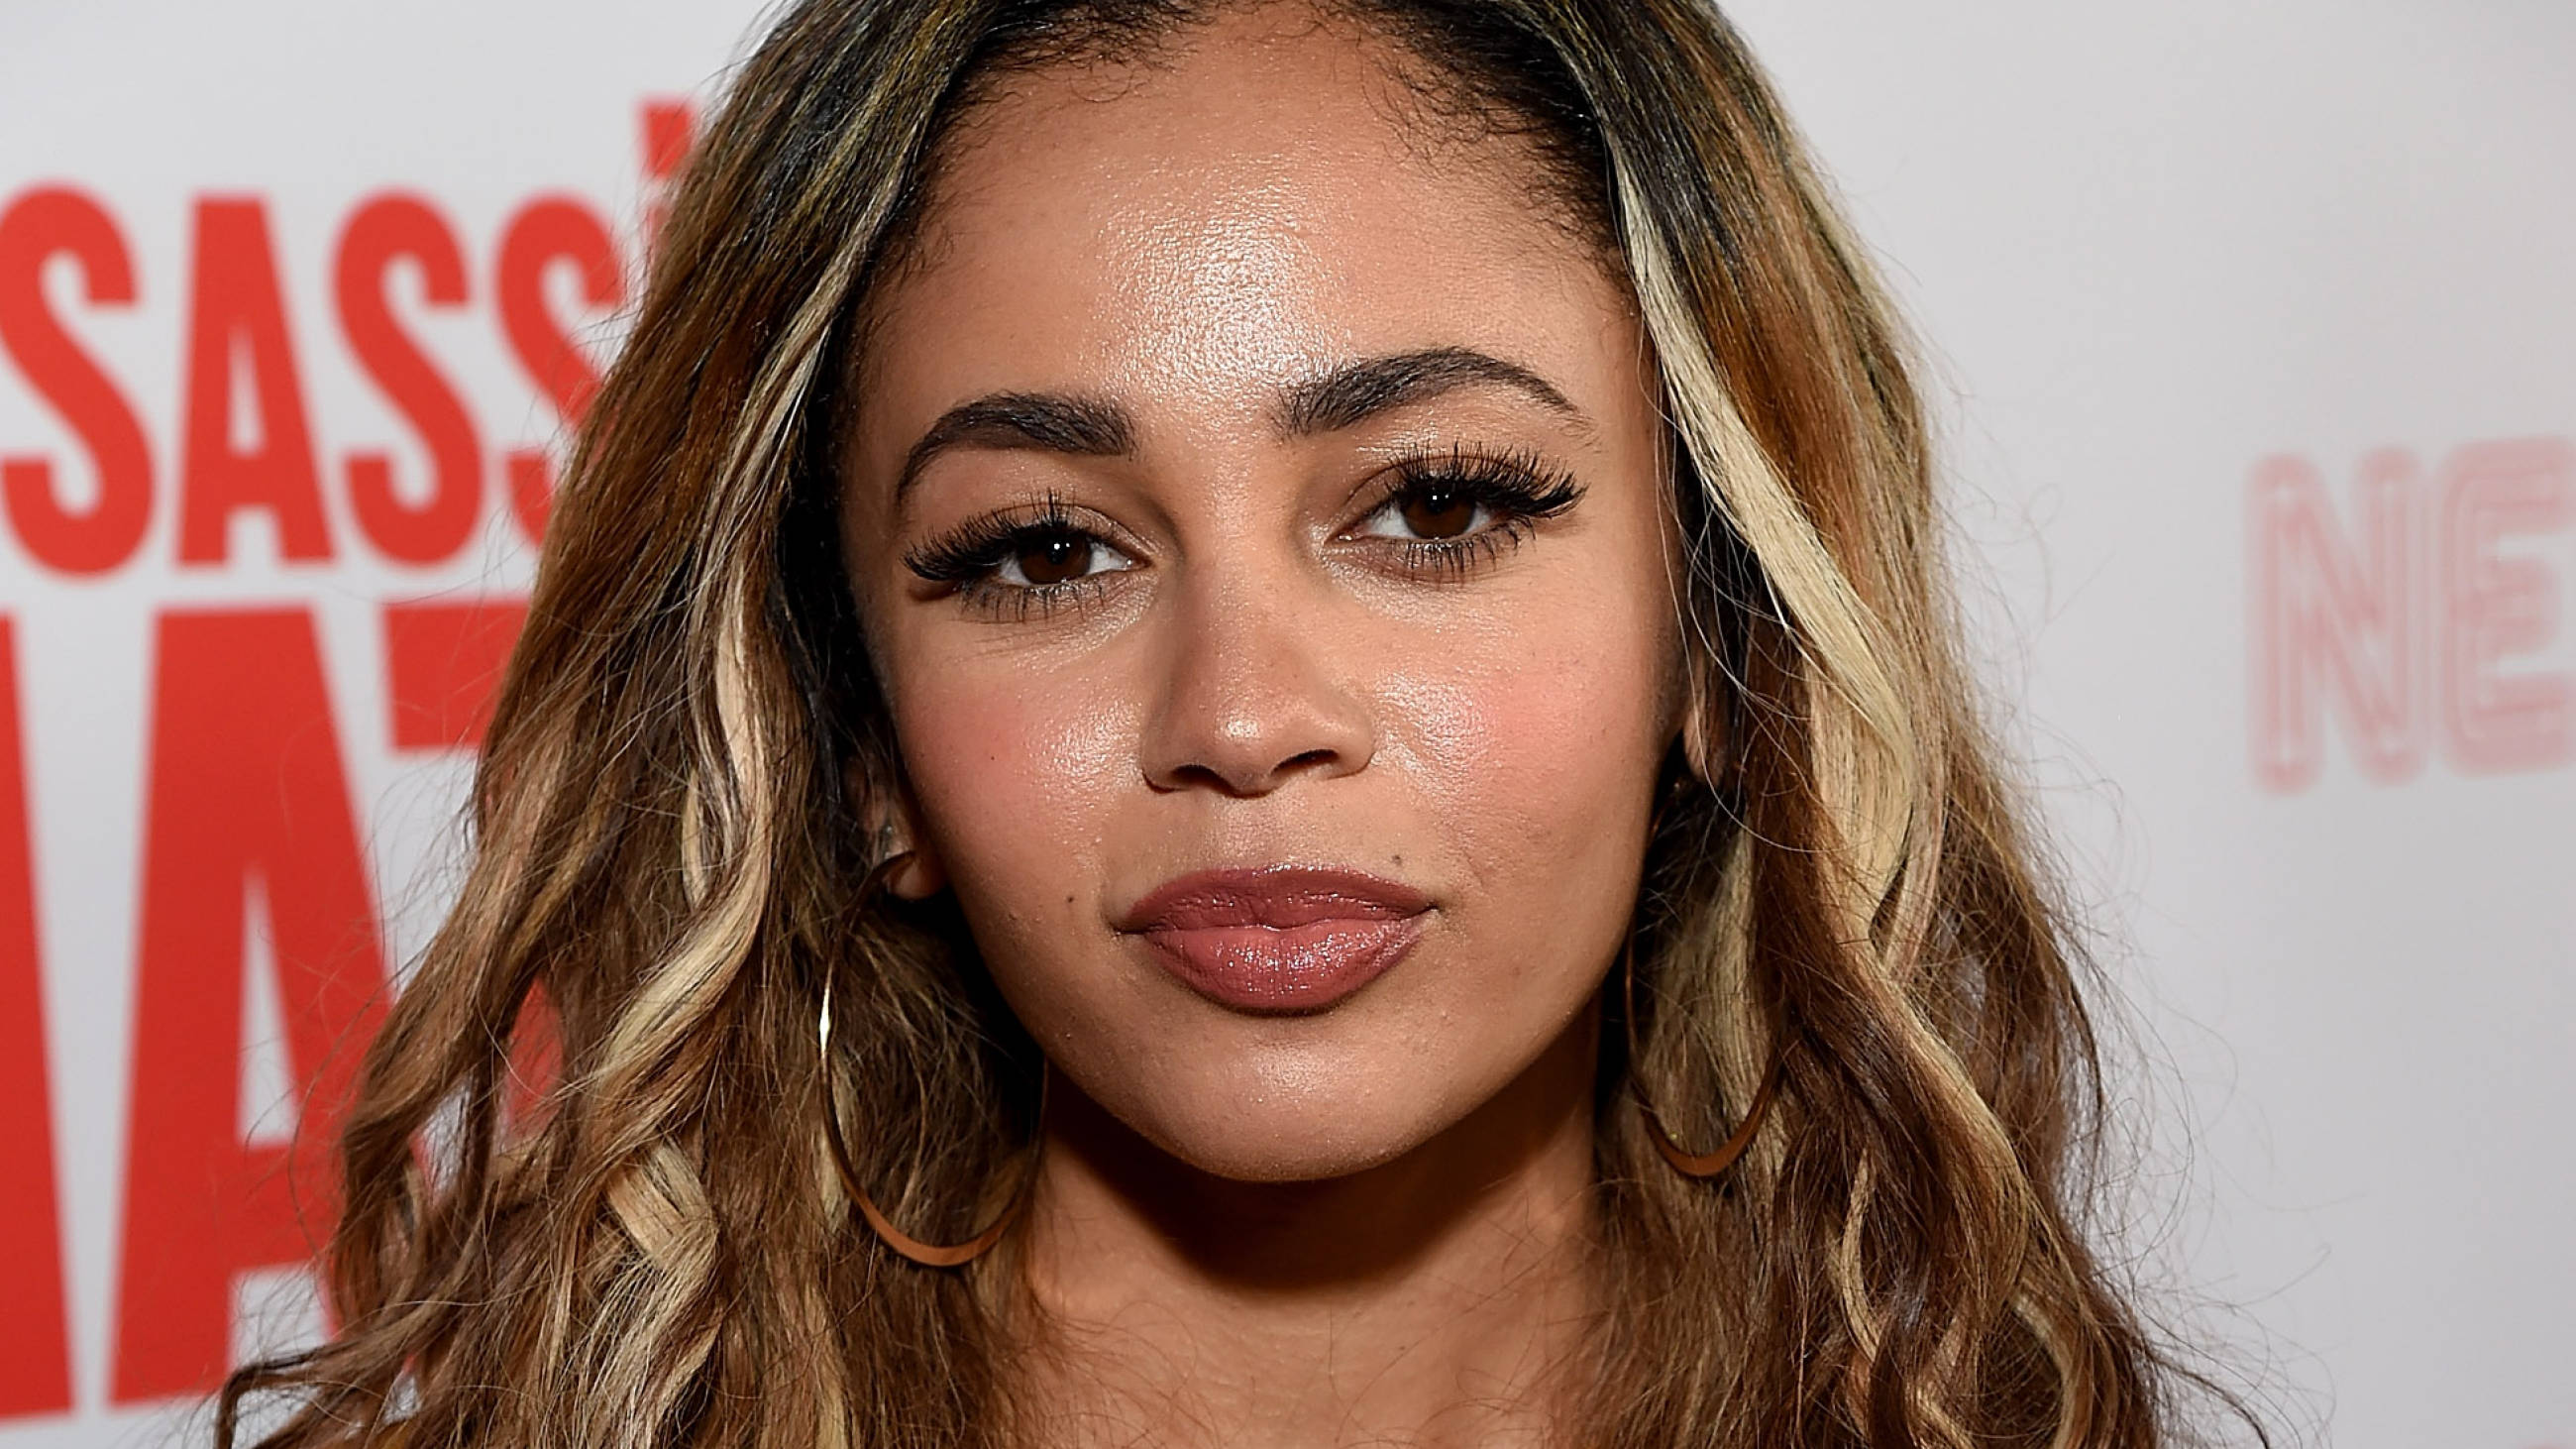 Vanessa Morgan Claps Back At Rude Riverdale Fans Telling Her To